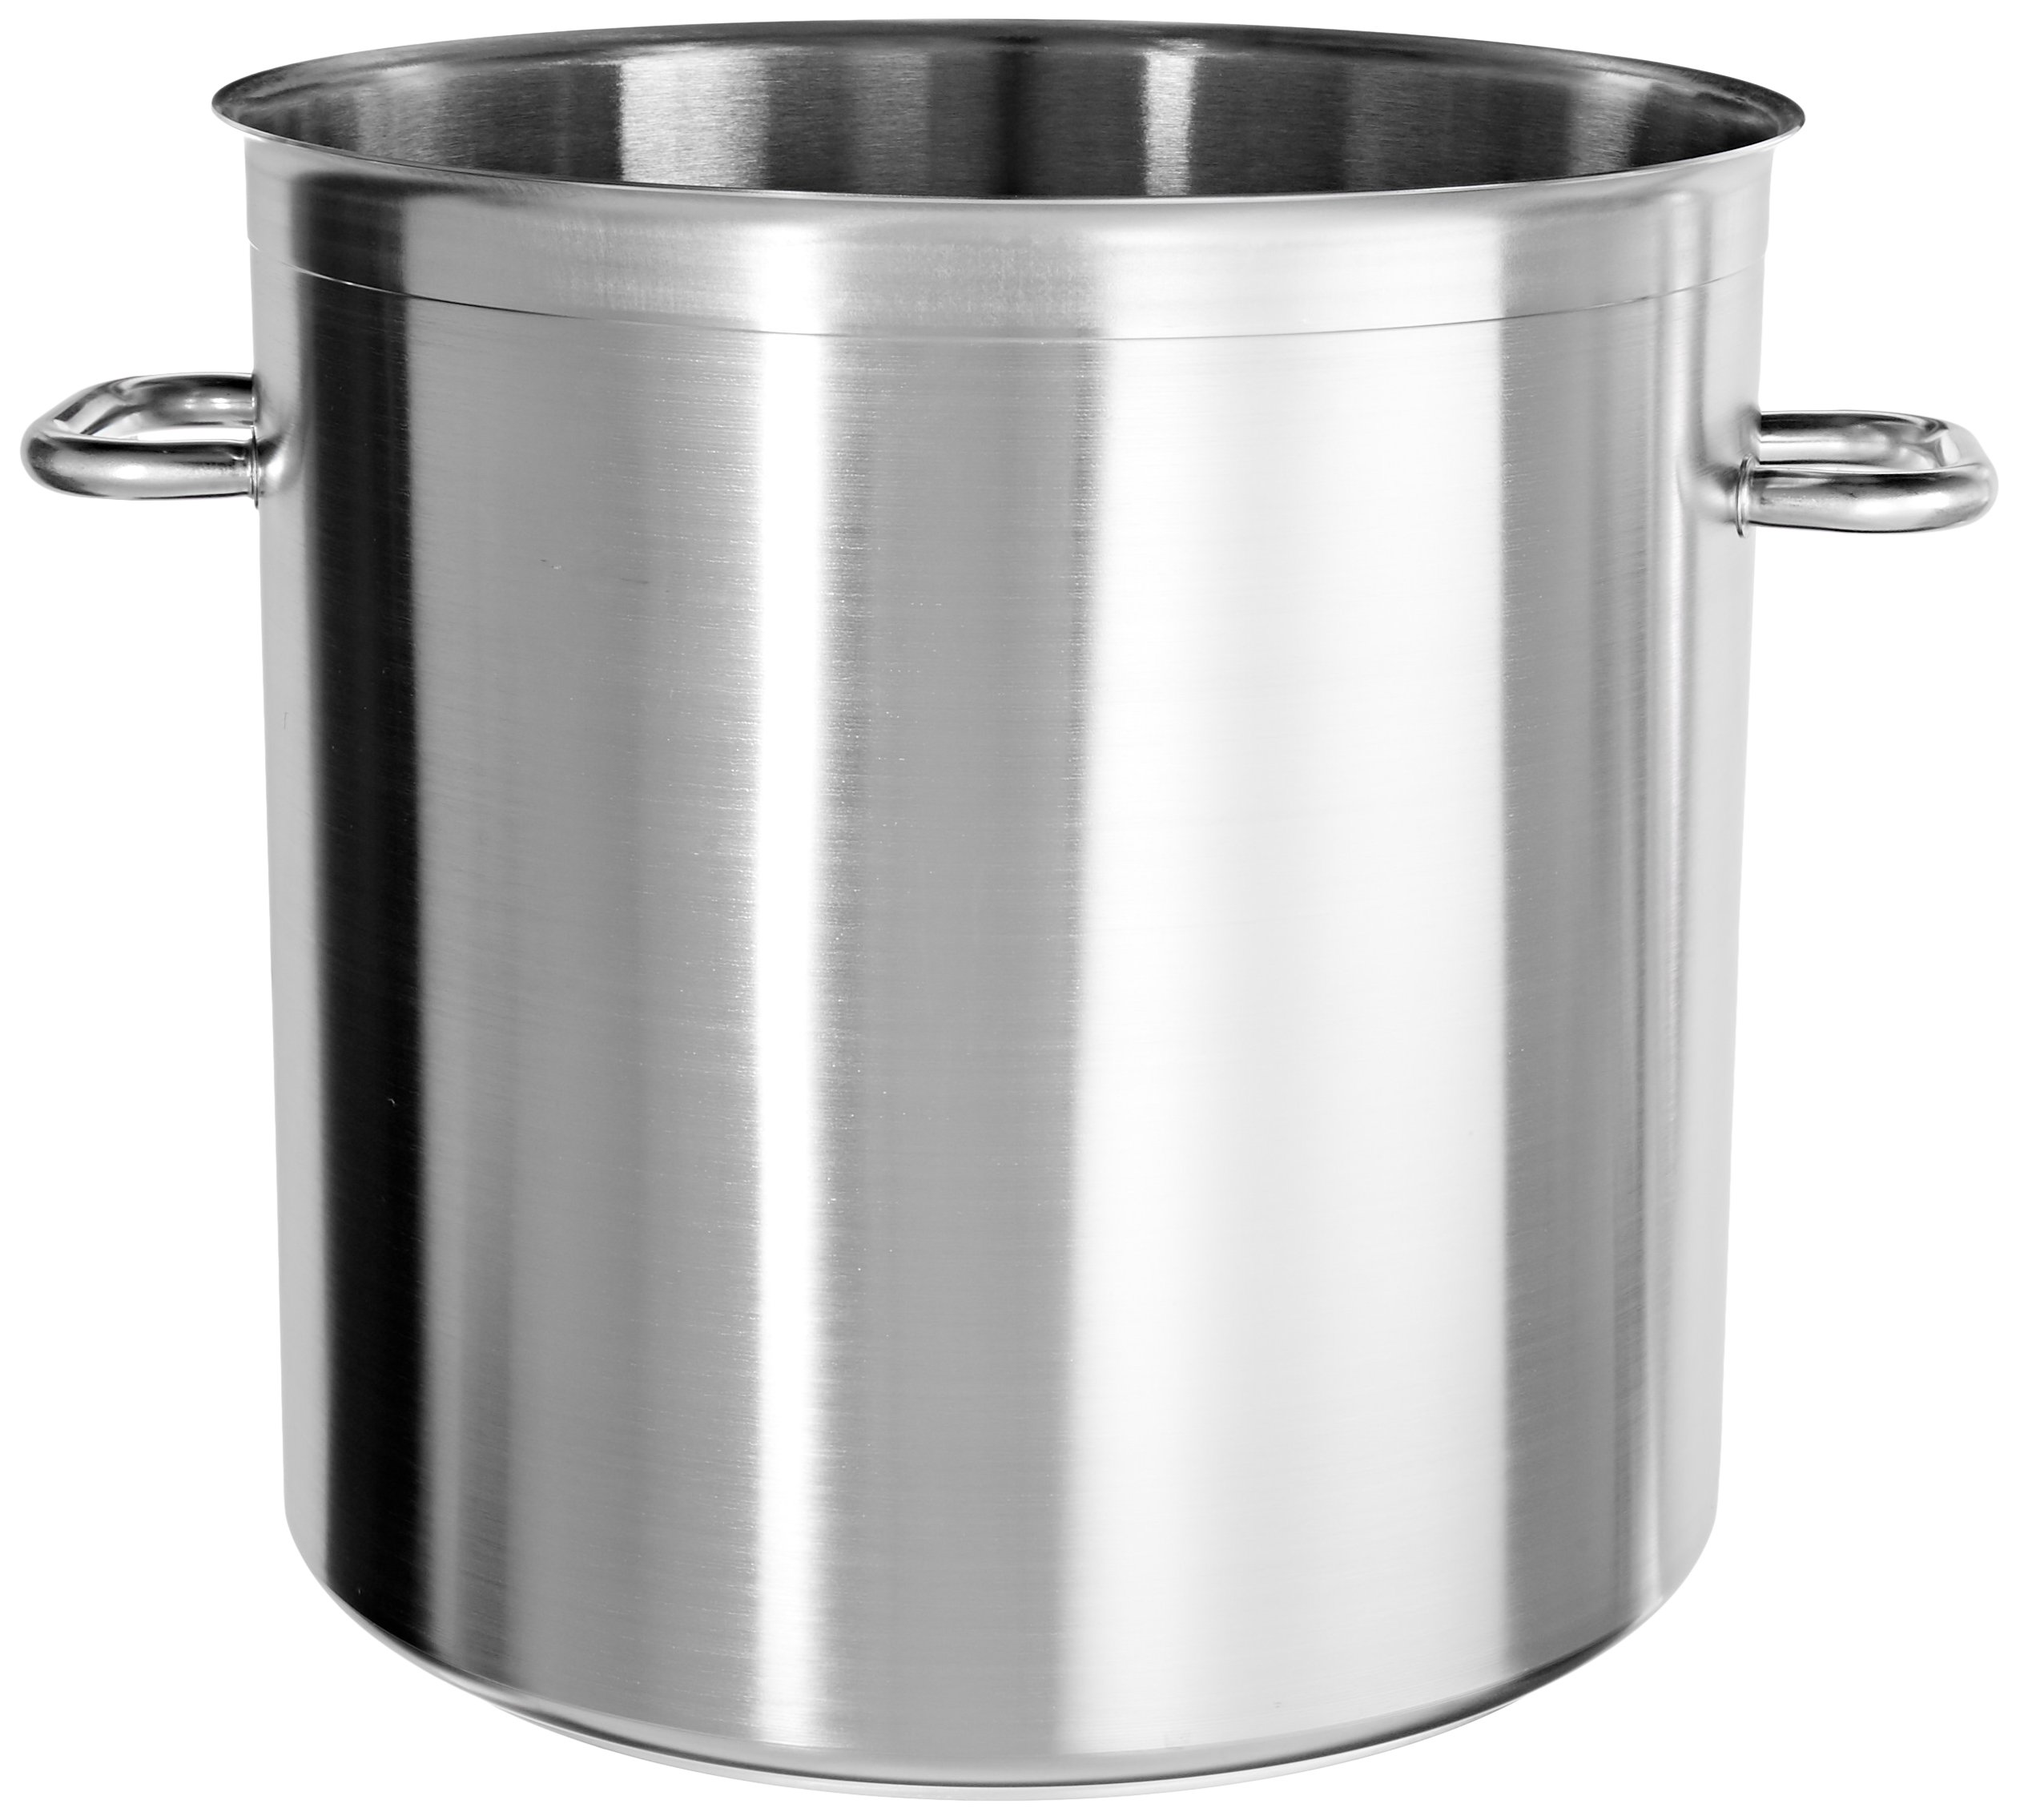 Matfer Bourgeat 694040 Excellence Stockpot without Lid, 15-3/4-Inch, Gray